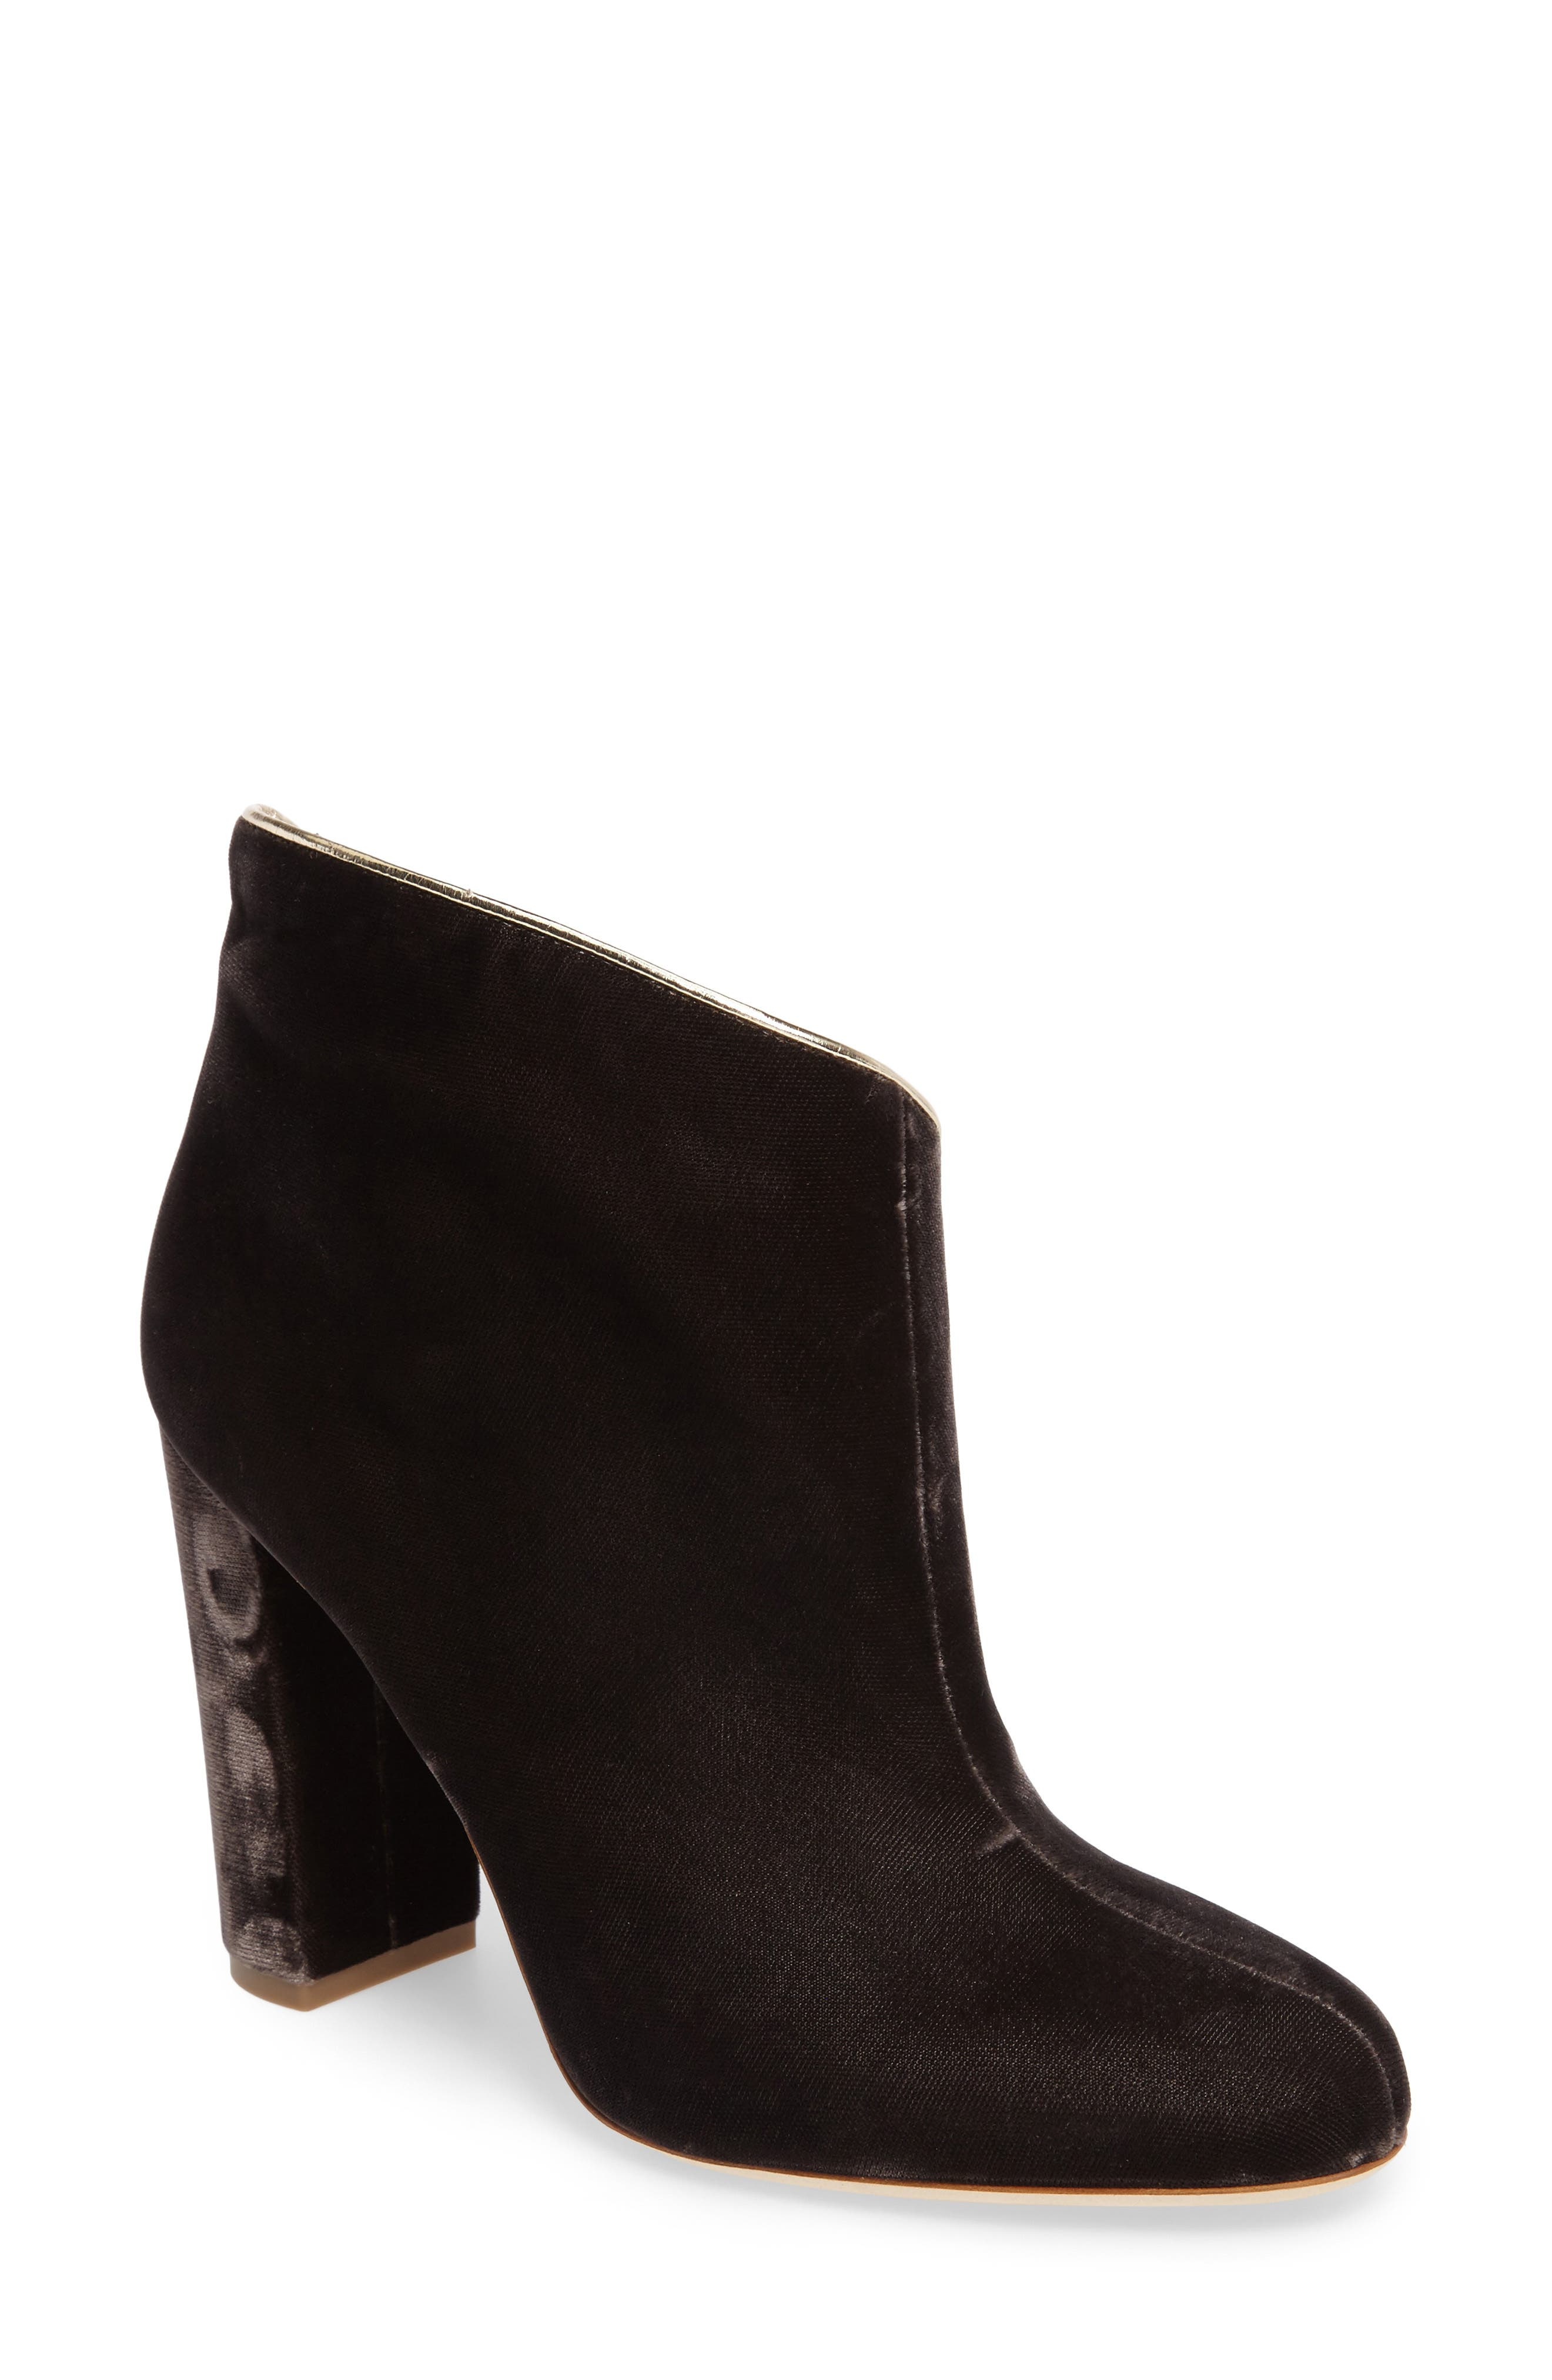 Malone Souliers Eula Bootie,                             Main thumbnail 1, color,                             020